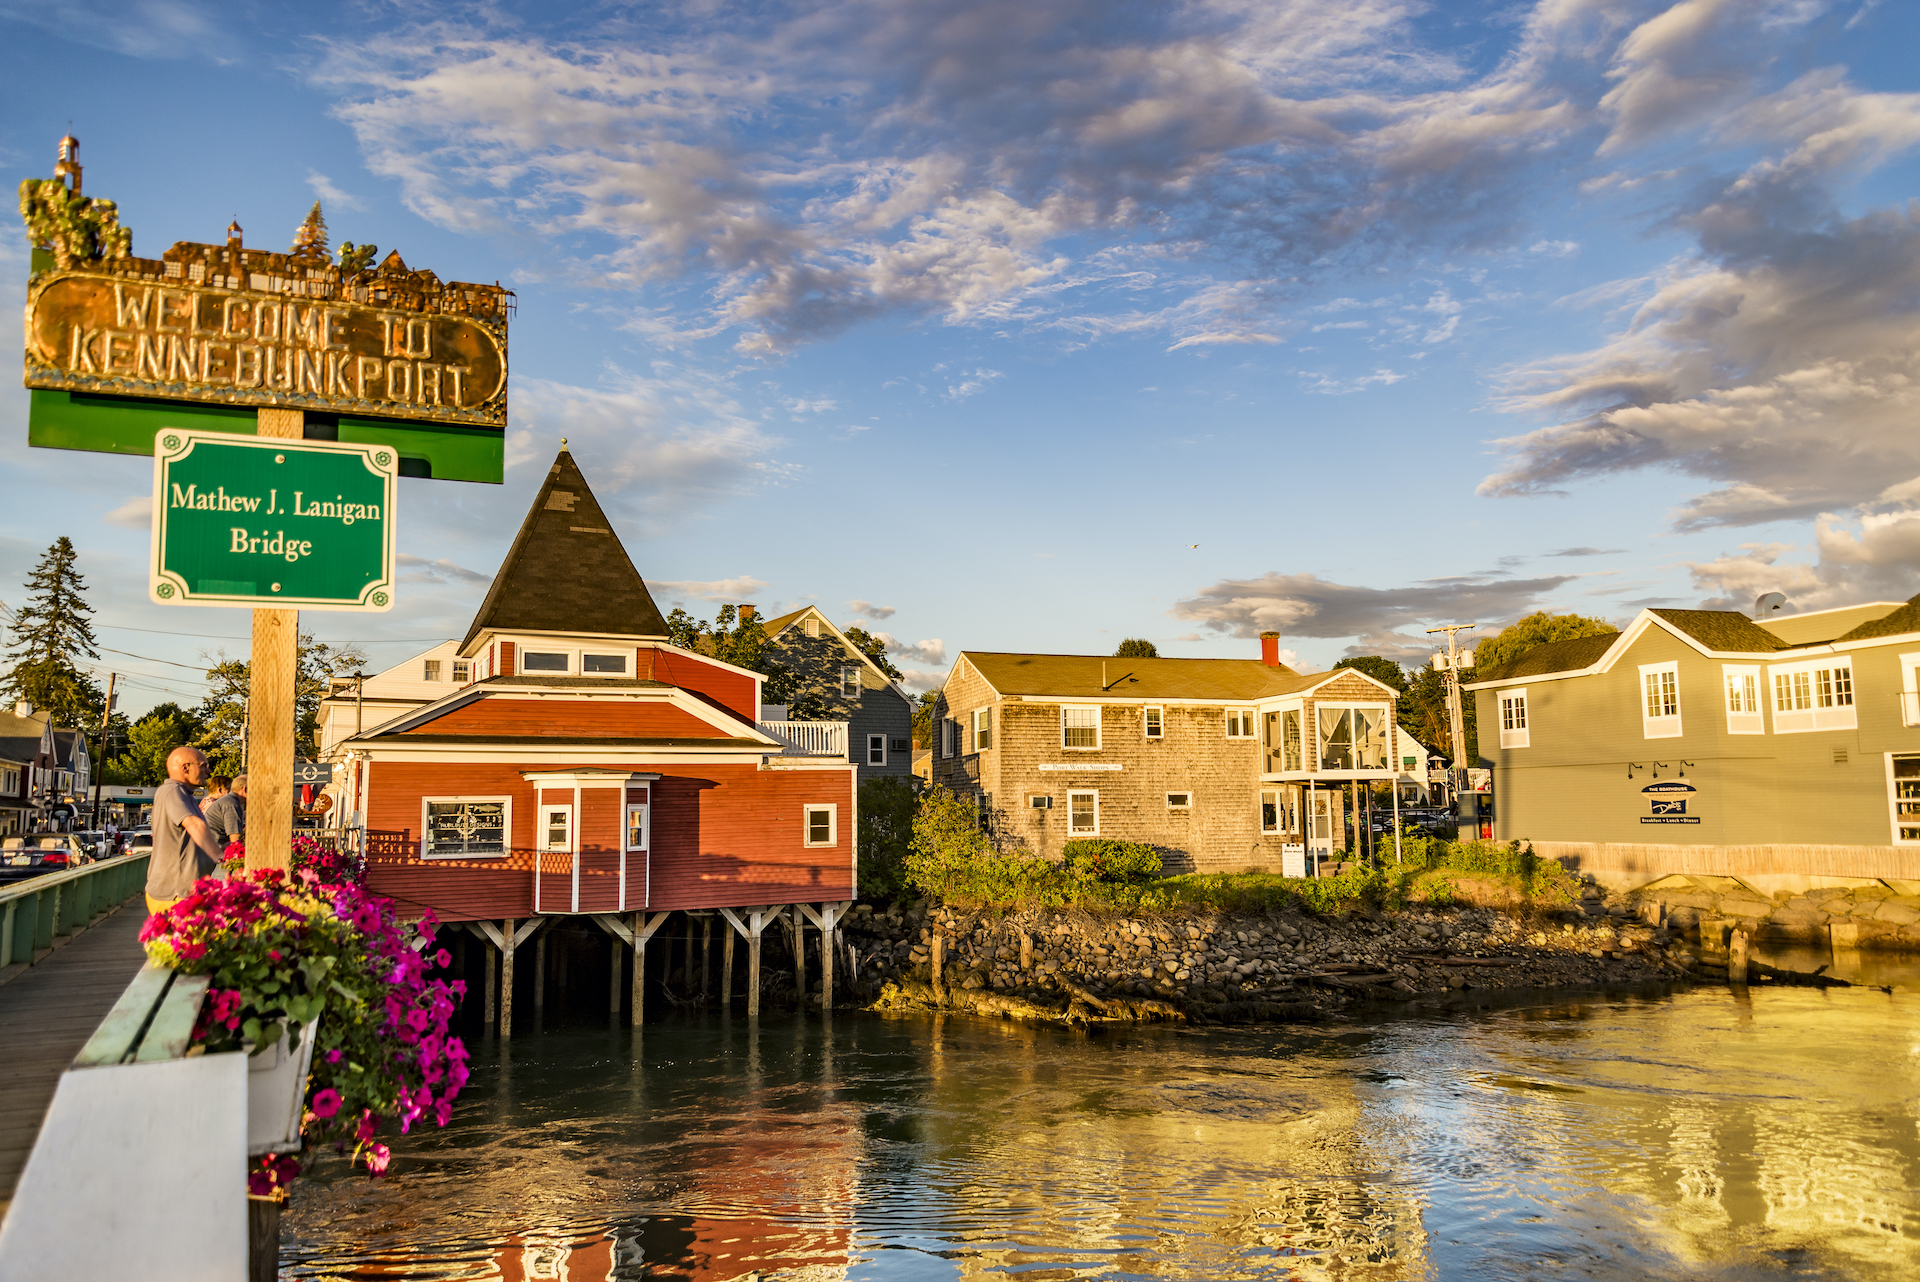 waterfront homes on stilts small towns in America